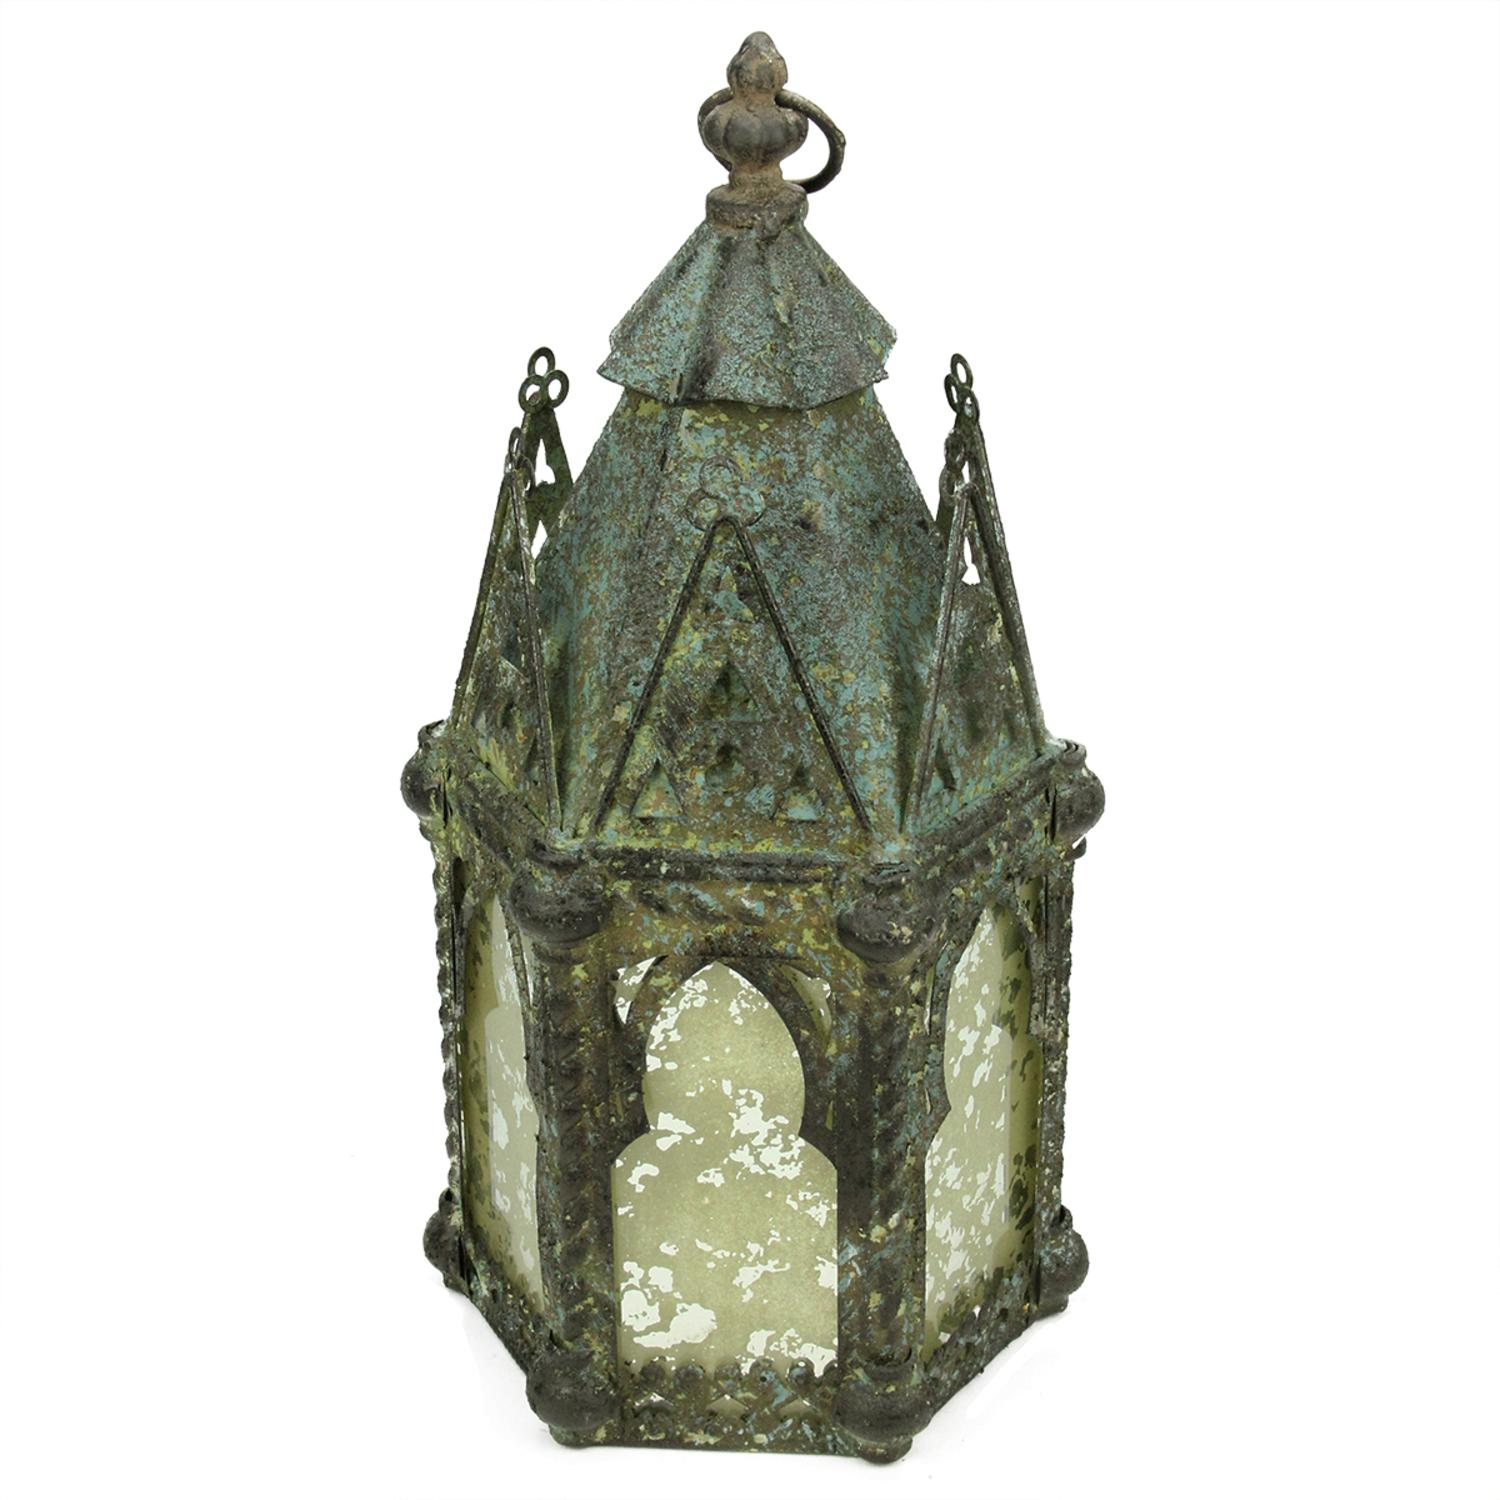 ''17.25'''' Antique Weathered Verdigris Style Church Hanging TAPER CANDLE Lantern''